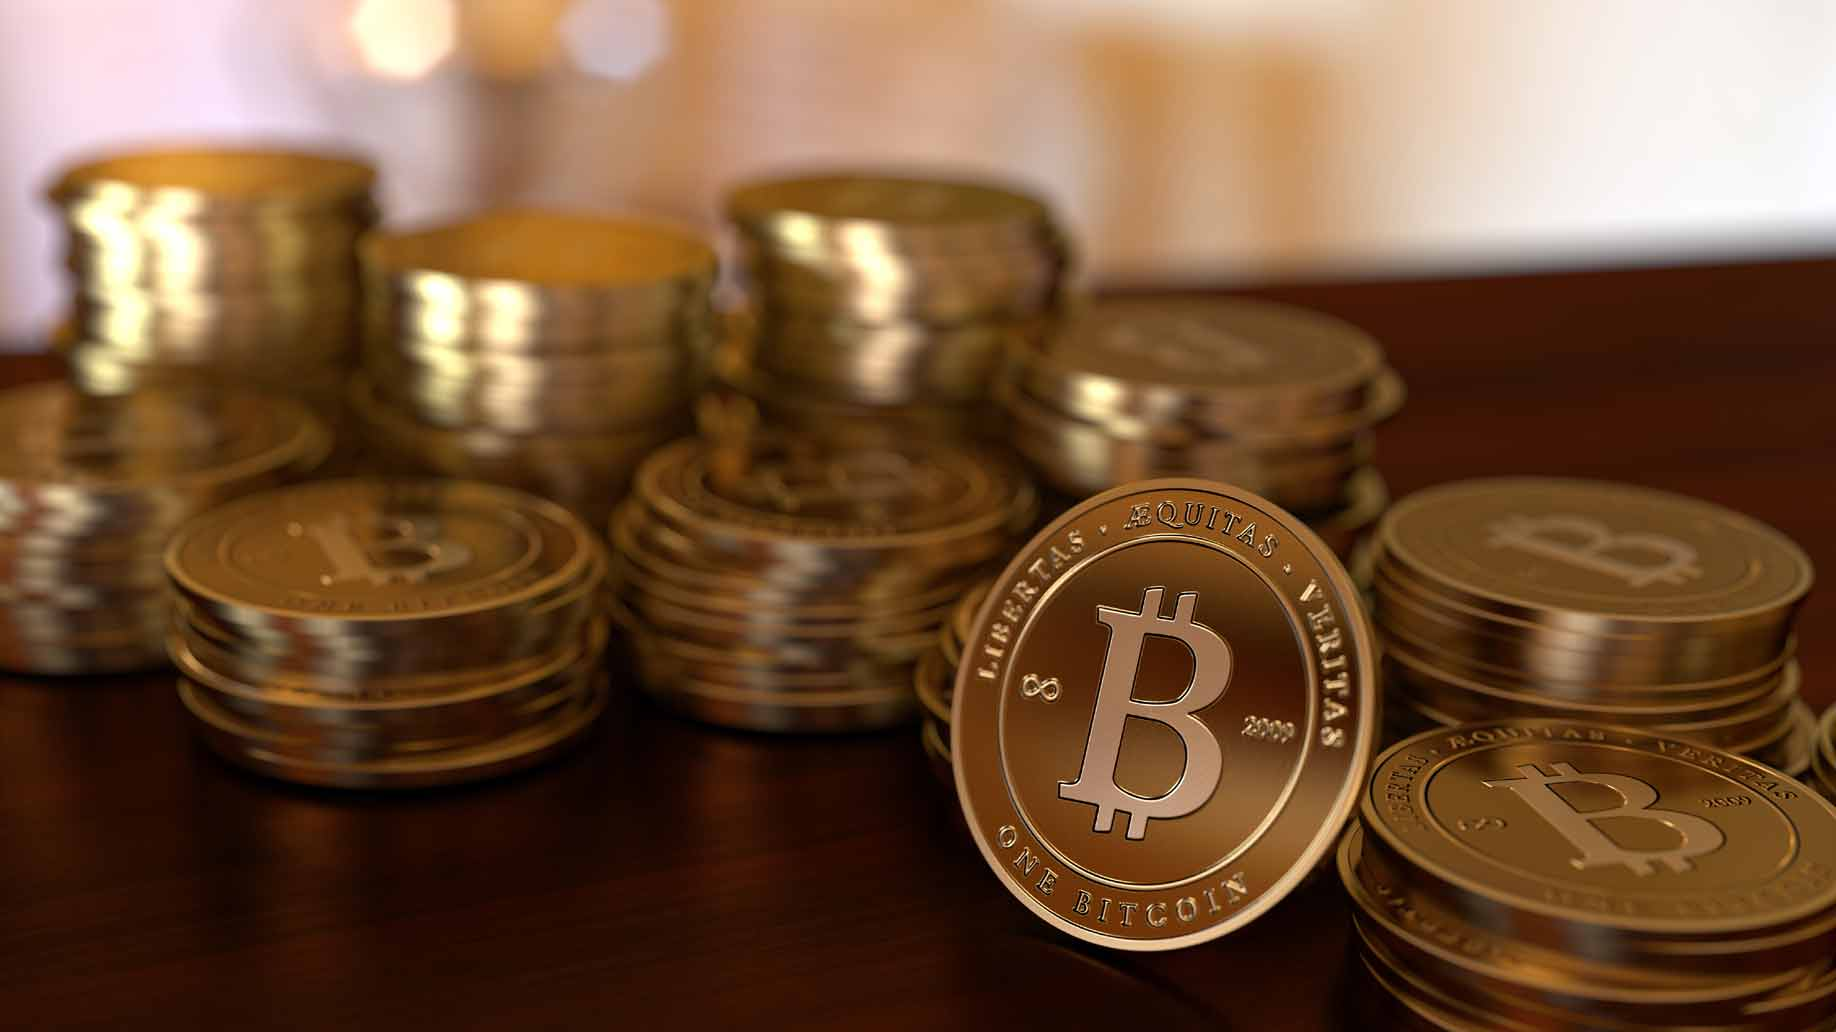 Stapel von Bitcoins